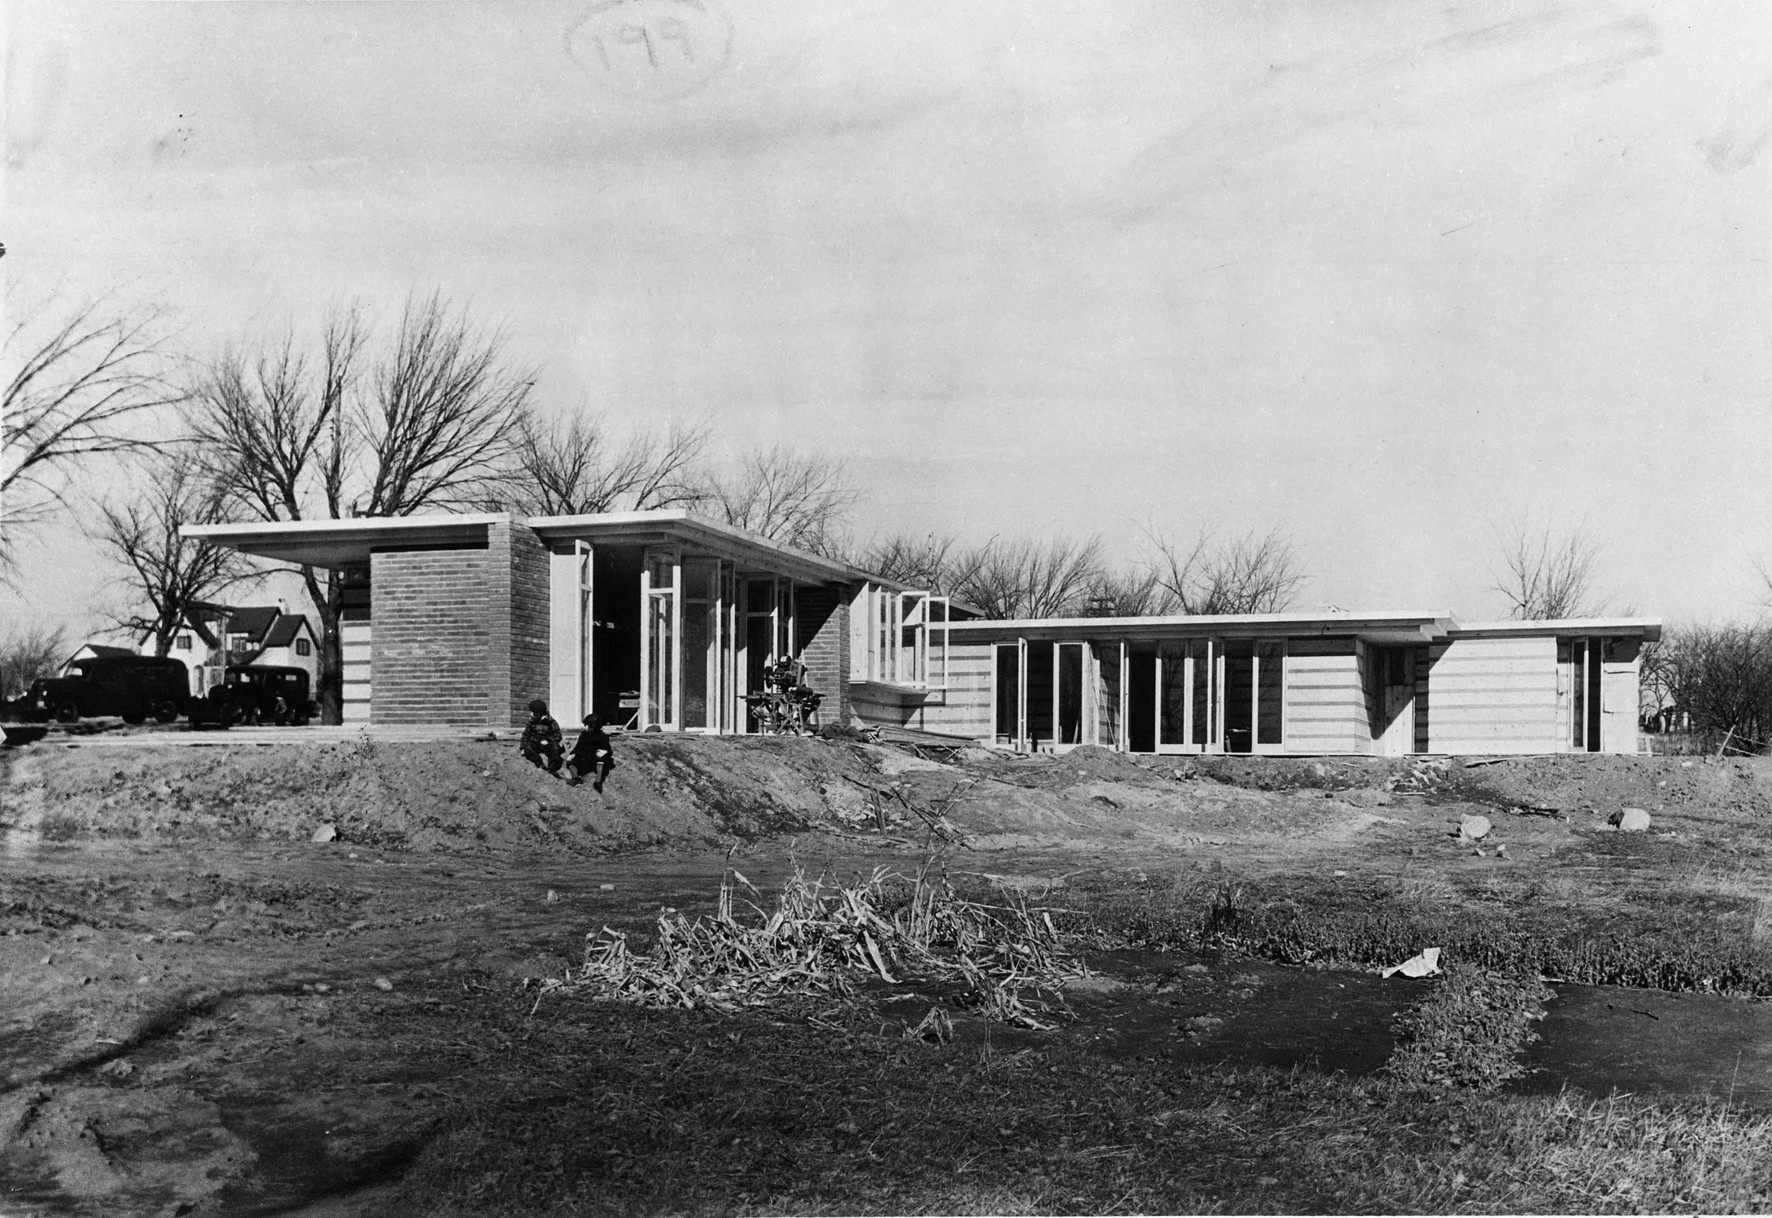 The Herbert Jacobs Residence / Getty Images